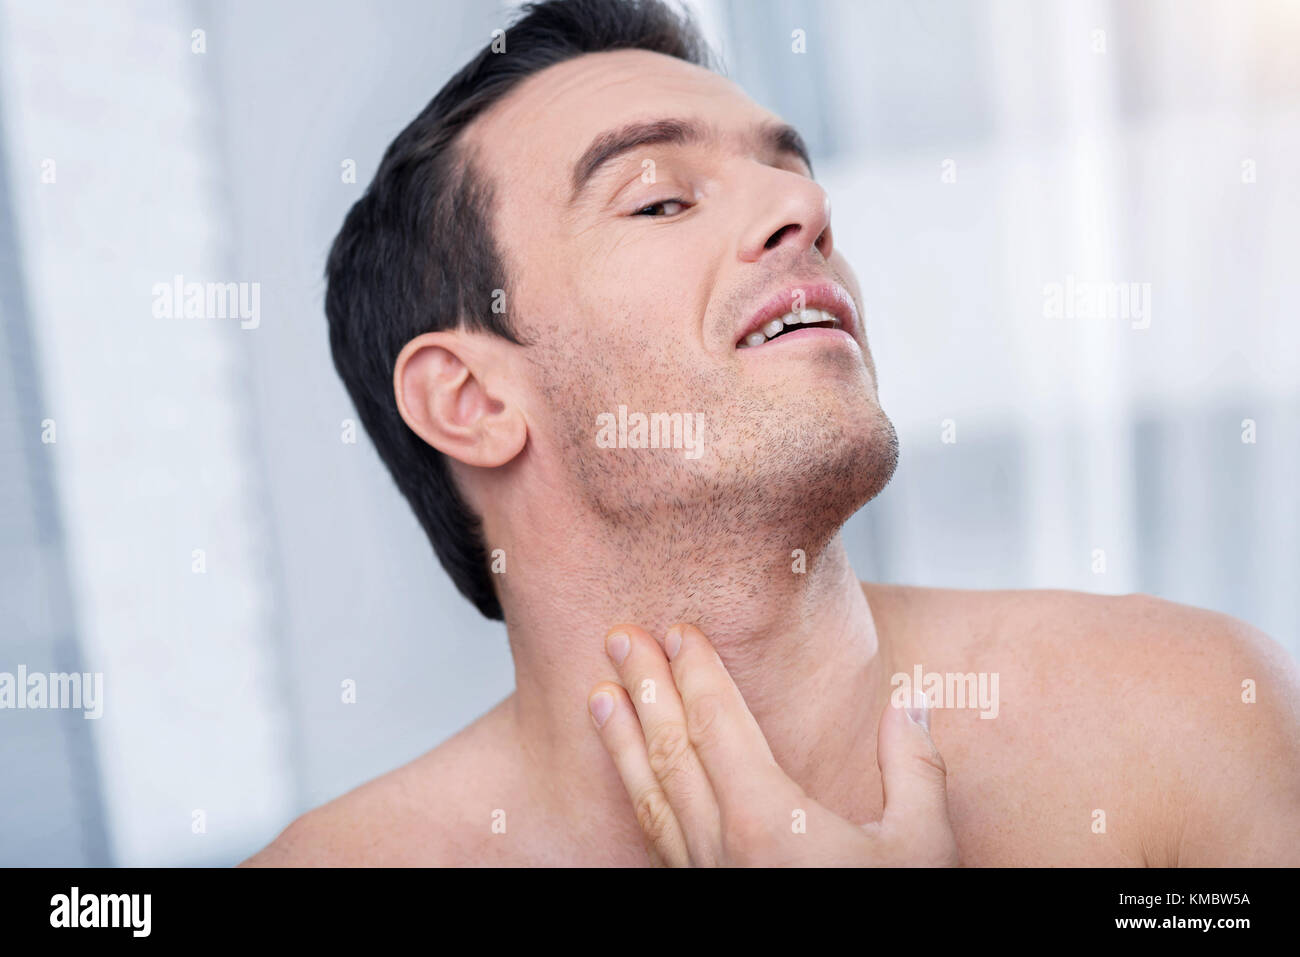 Relived satisfied man admiring his handsomeness Stock Photo